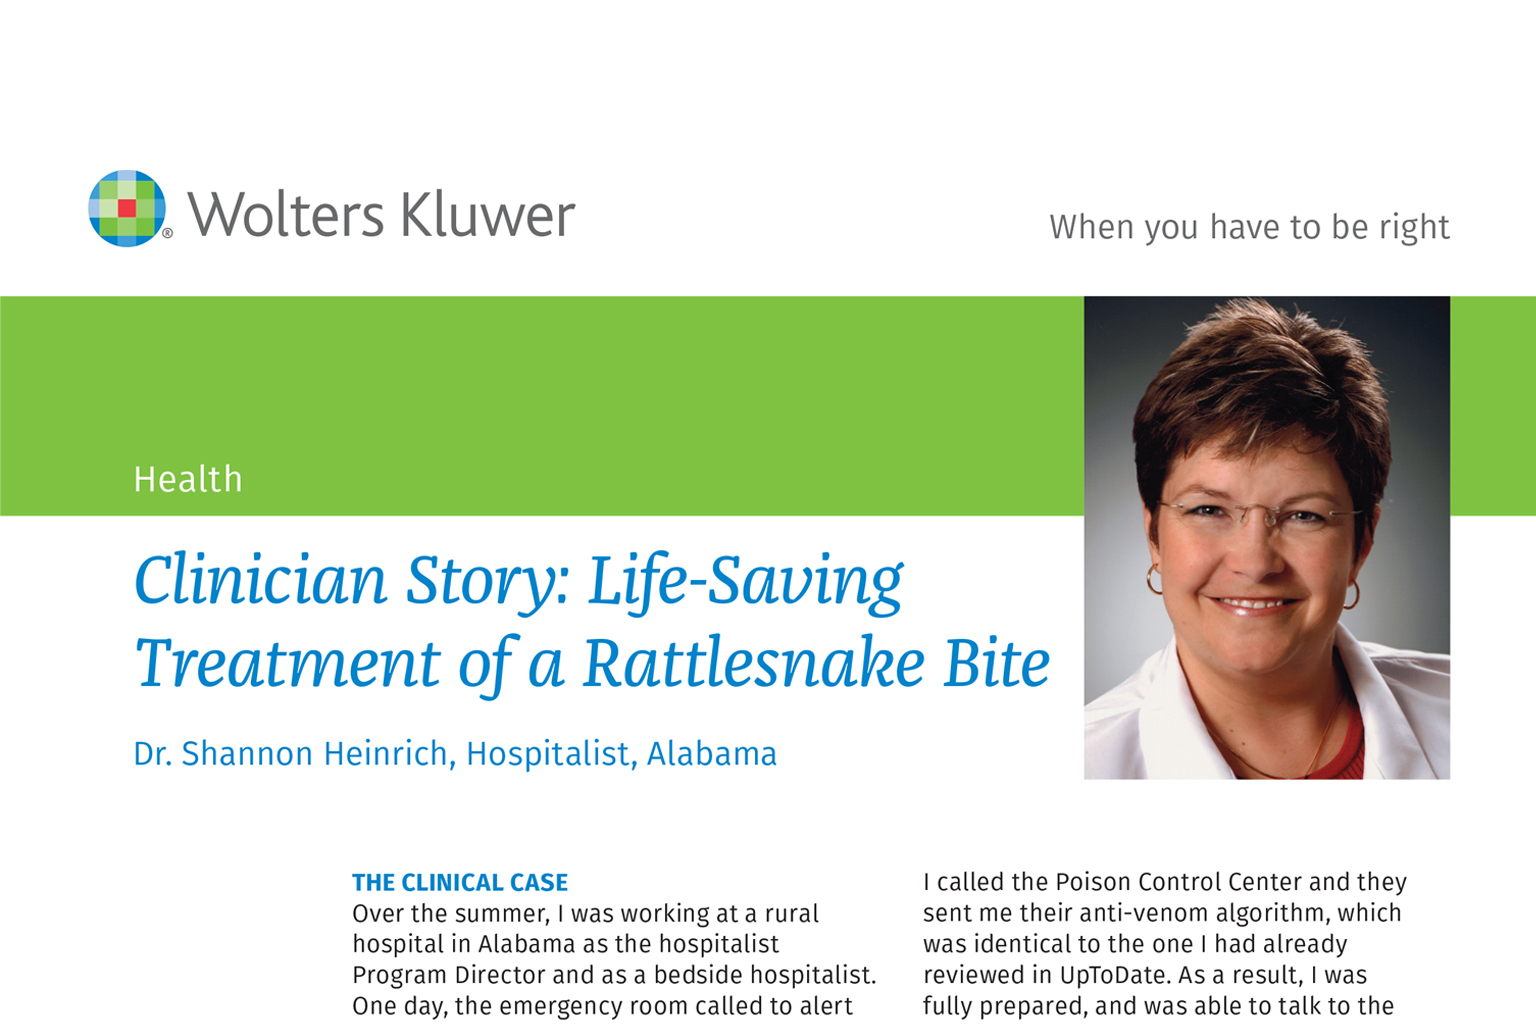 UpToDate Clinician Story: Life-Saving Treatment of a Rattlesnake Bite